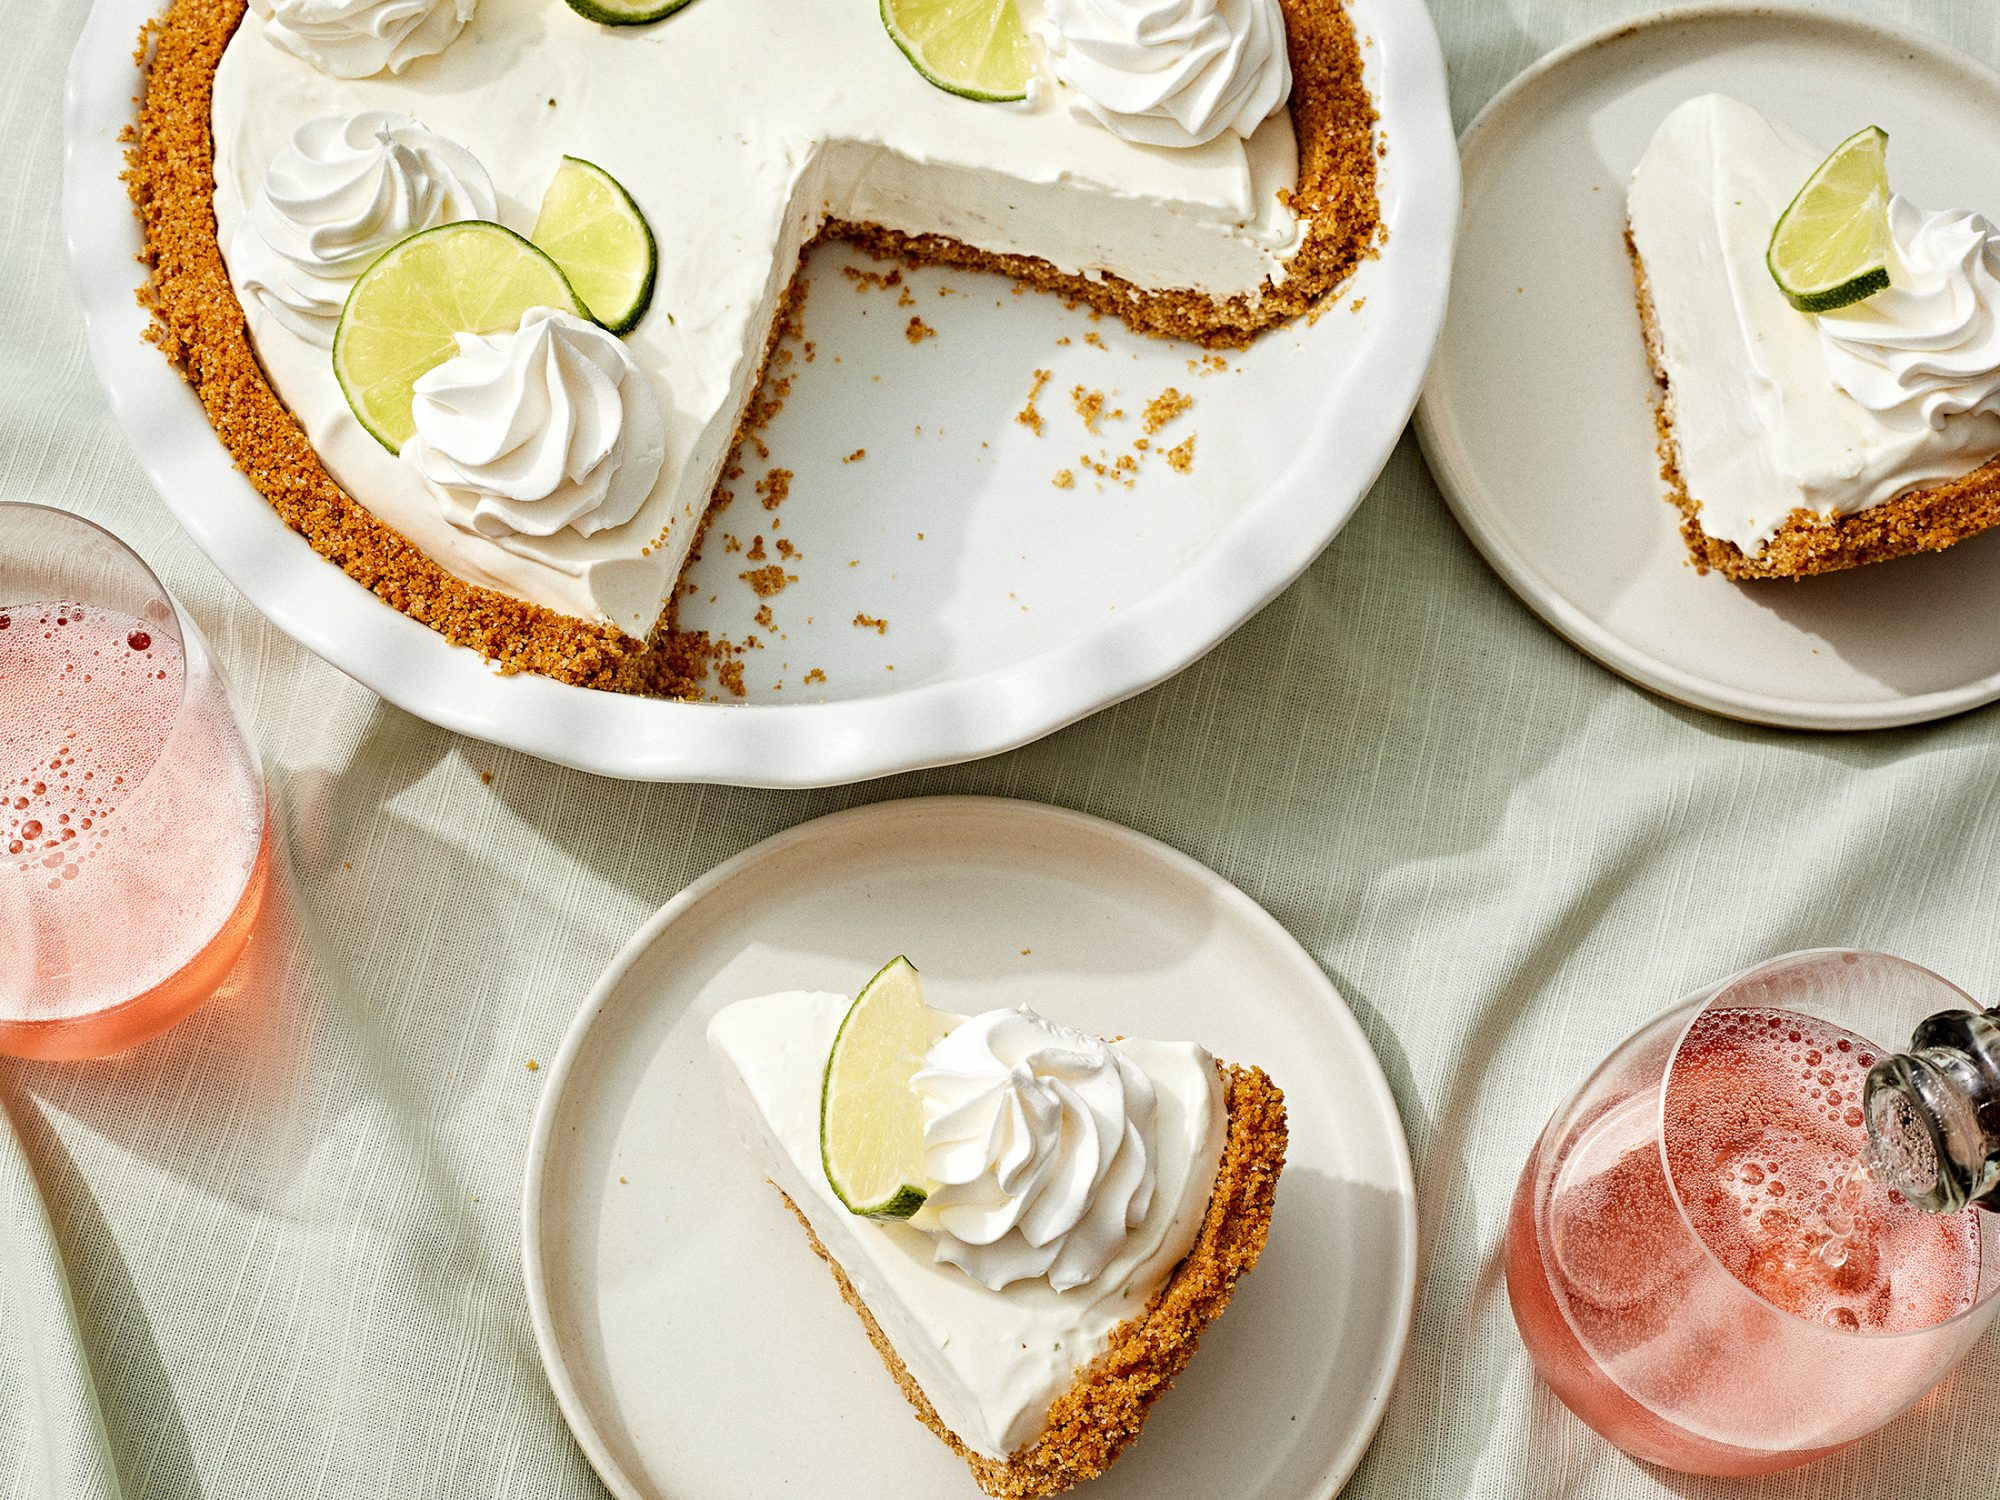 No Bake Key Lime Pie image